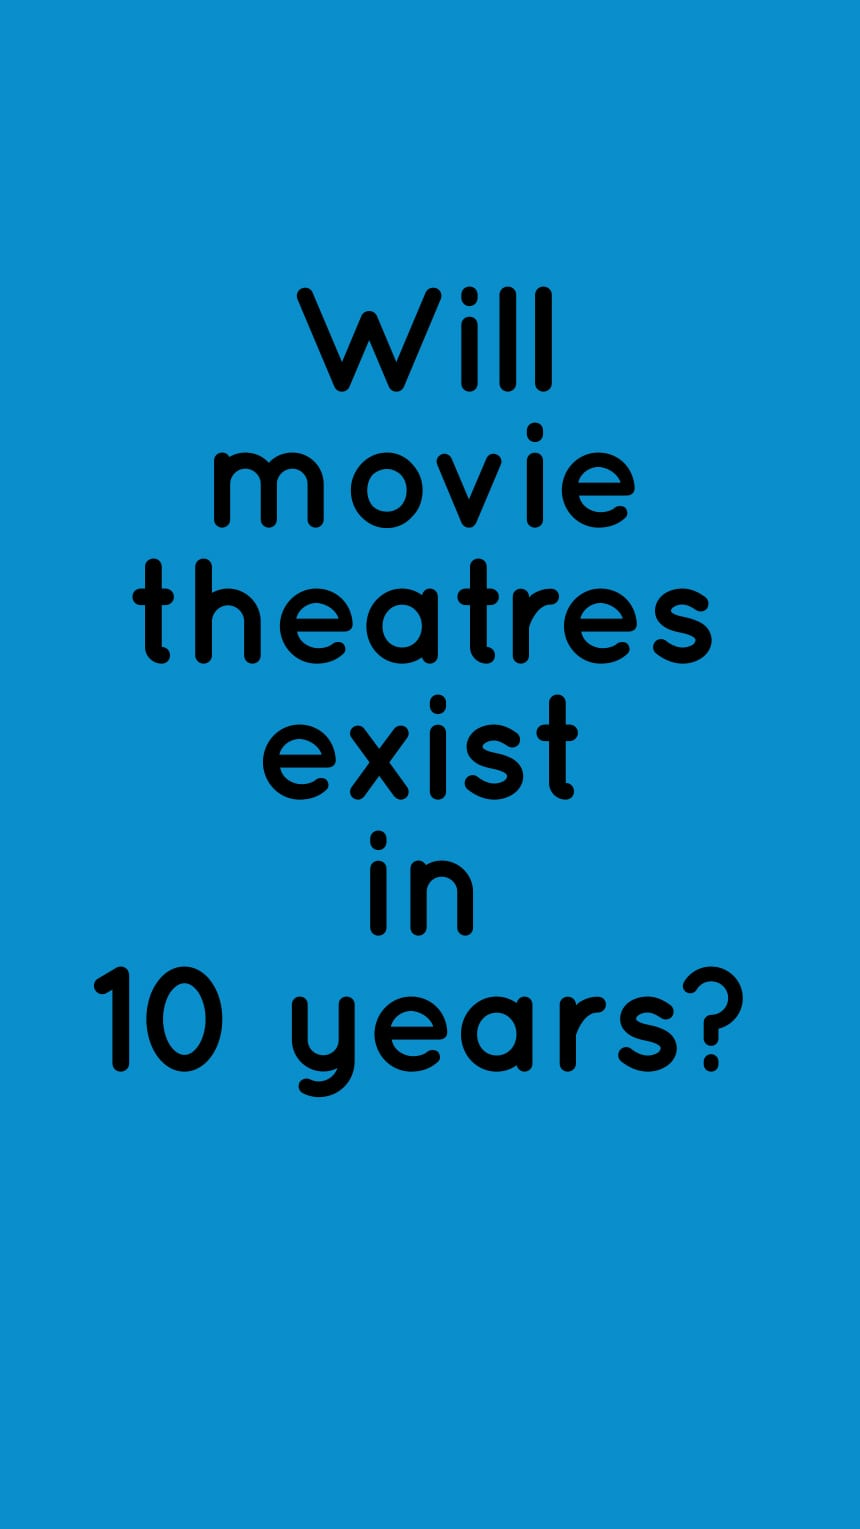 Will movie theatres exist in 10 years?